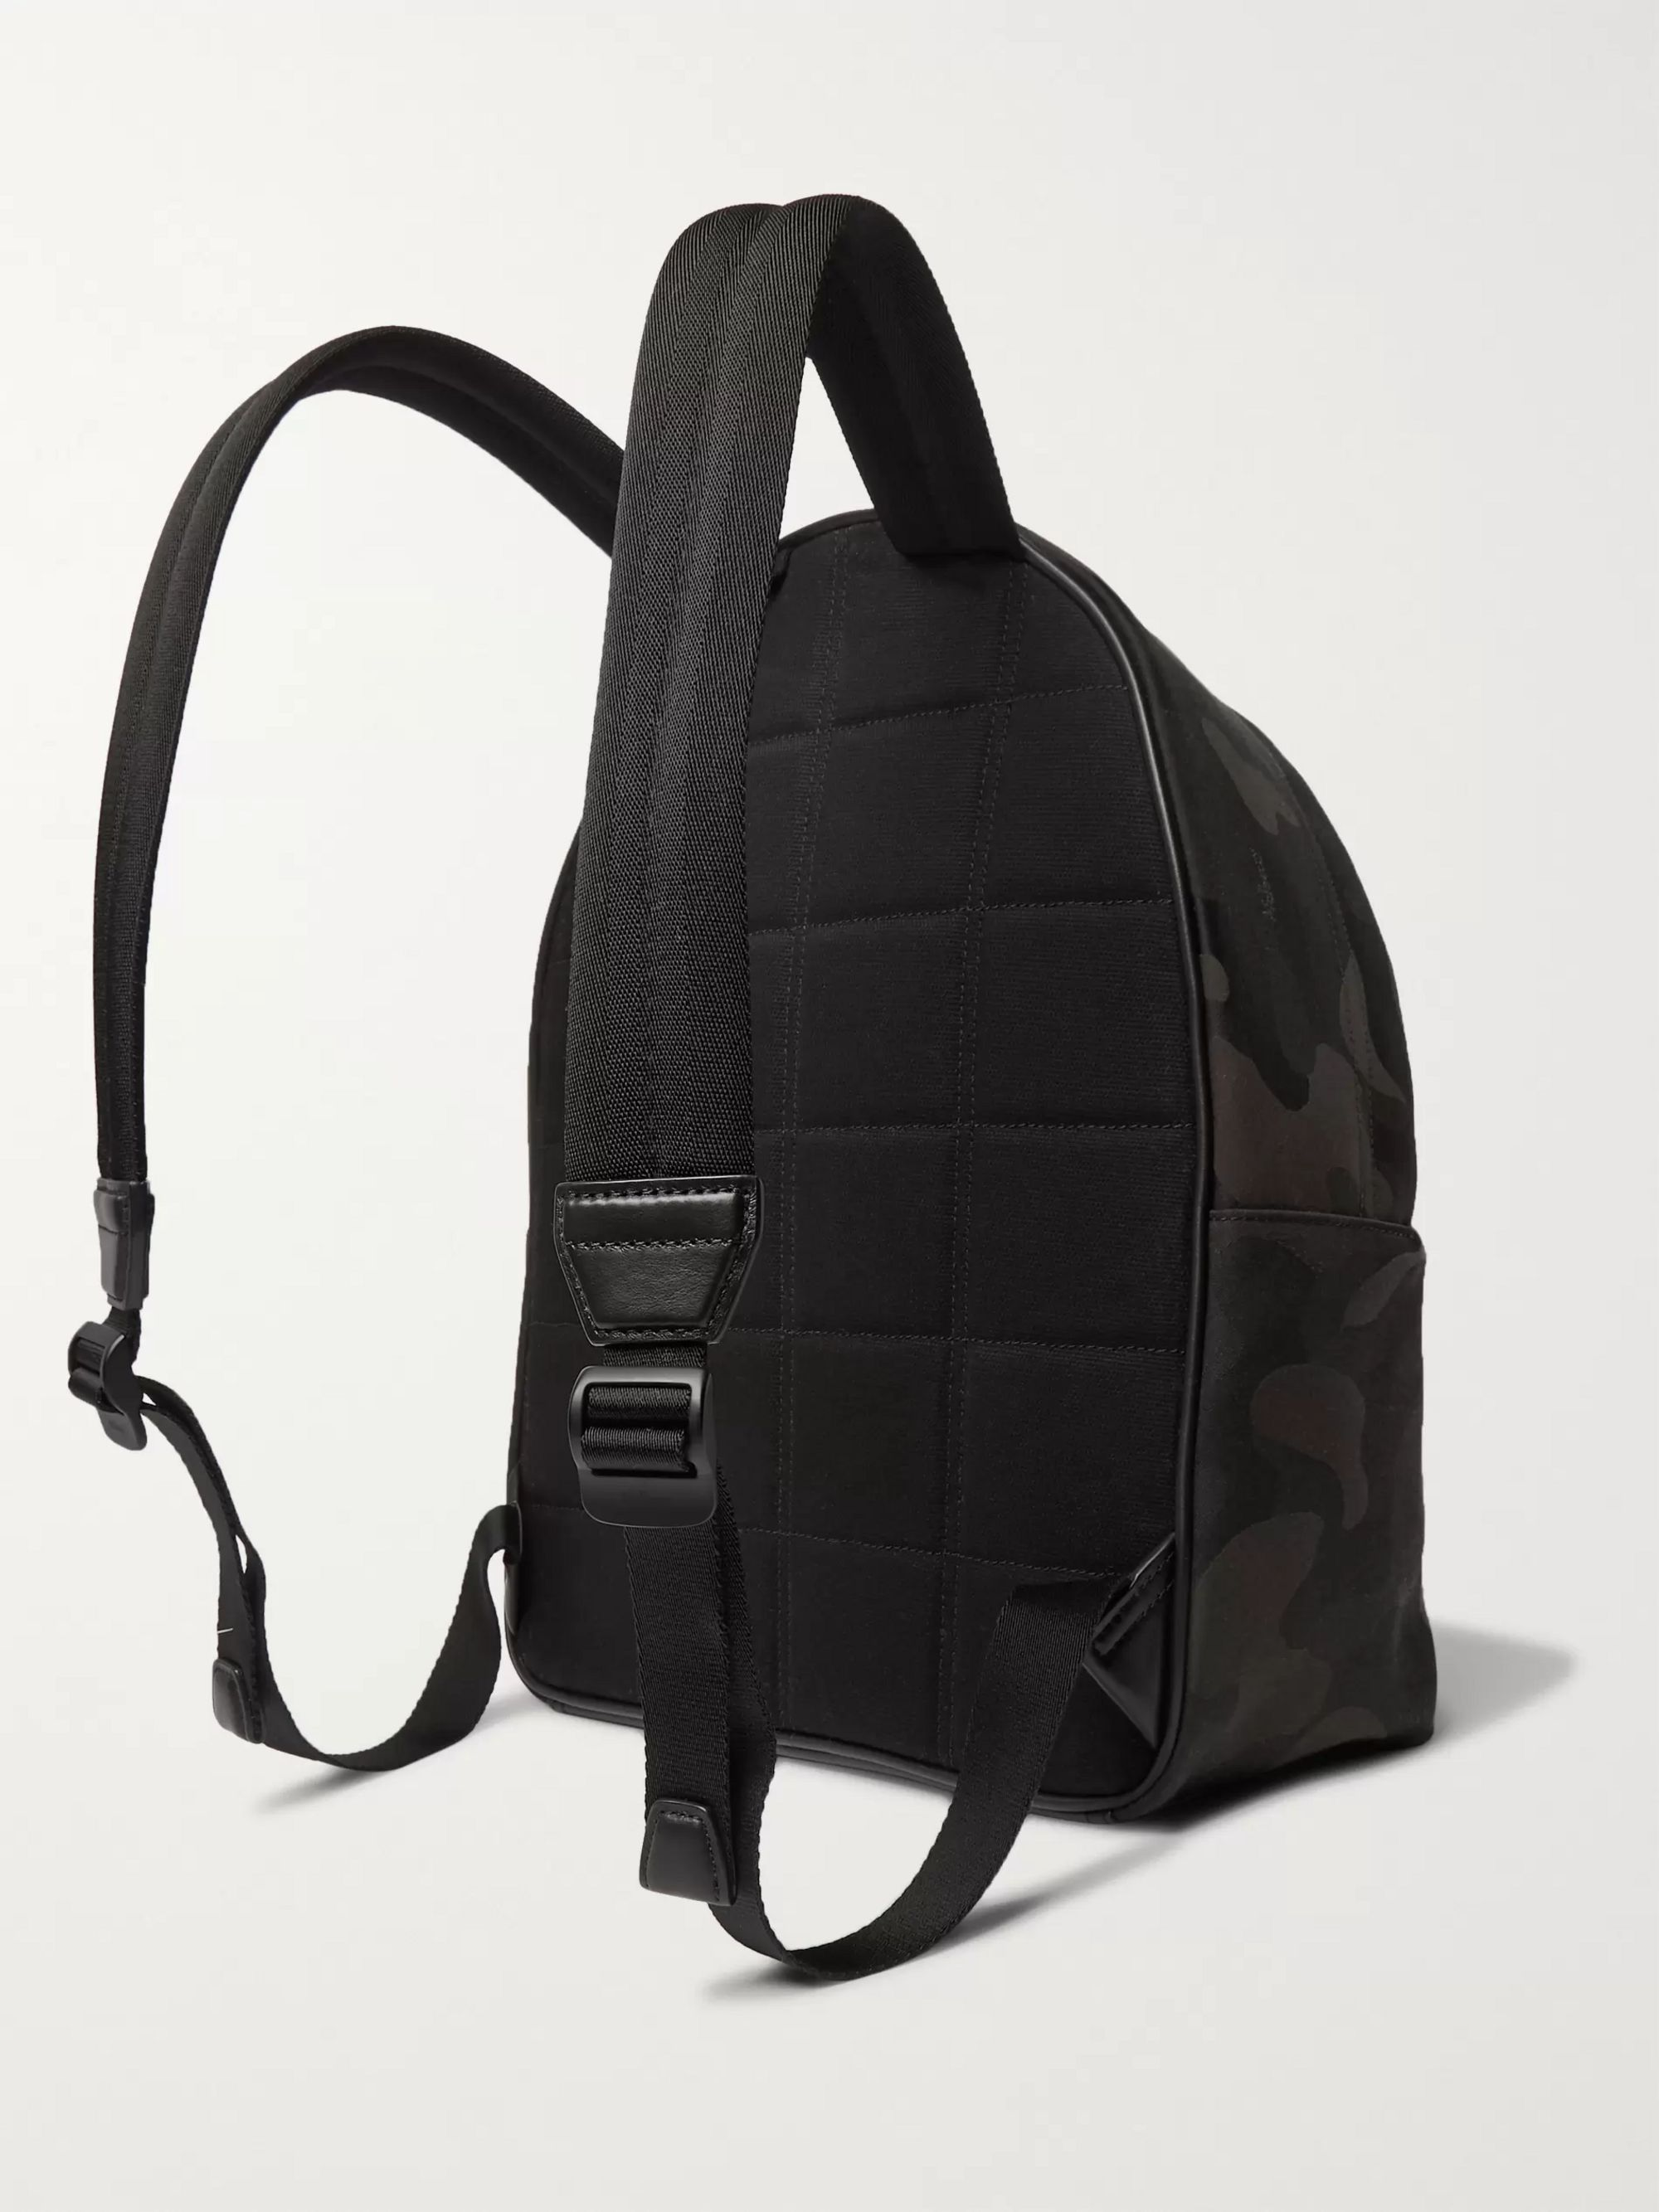 Mulberry Leather-Trimmed Camouflage-Print Canvas Backpack